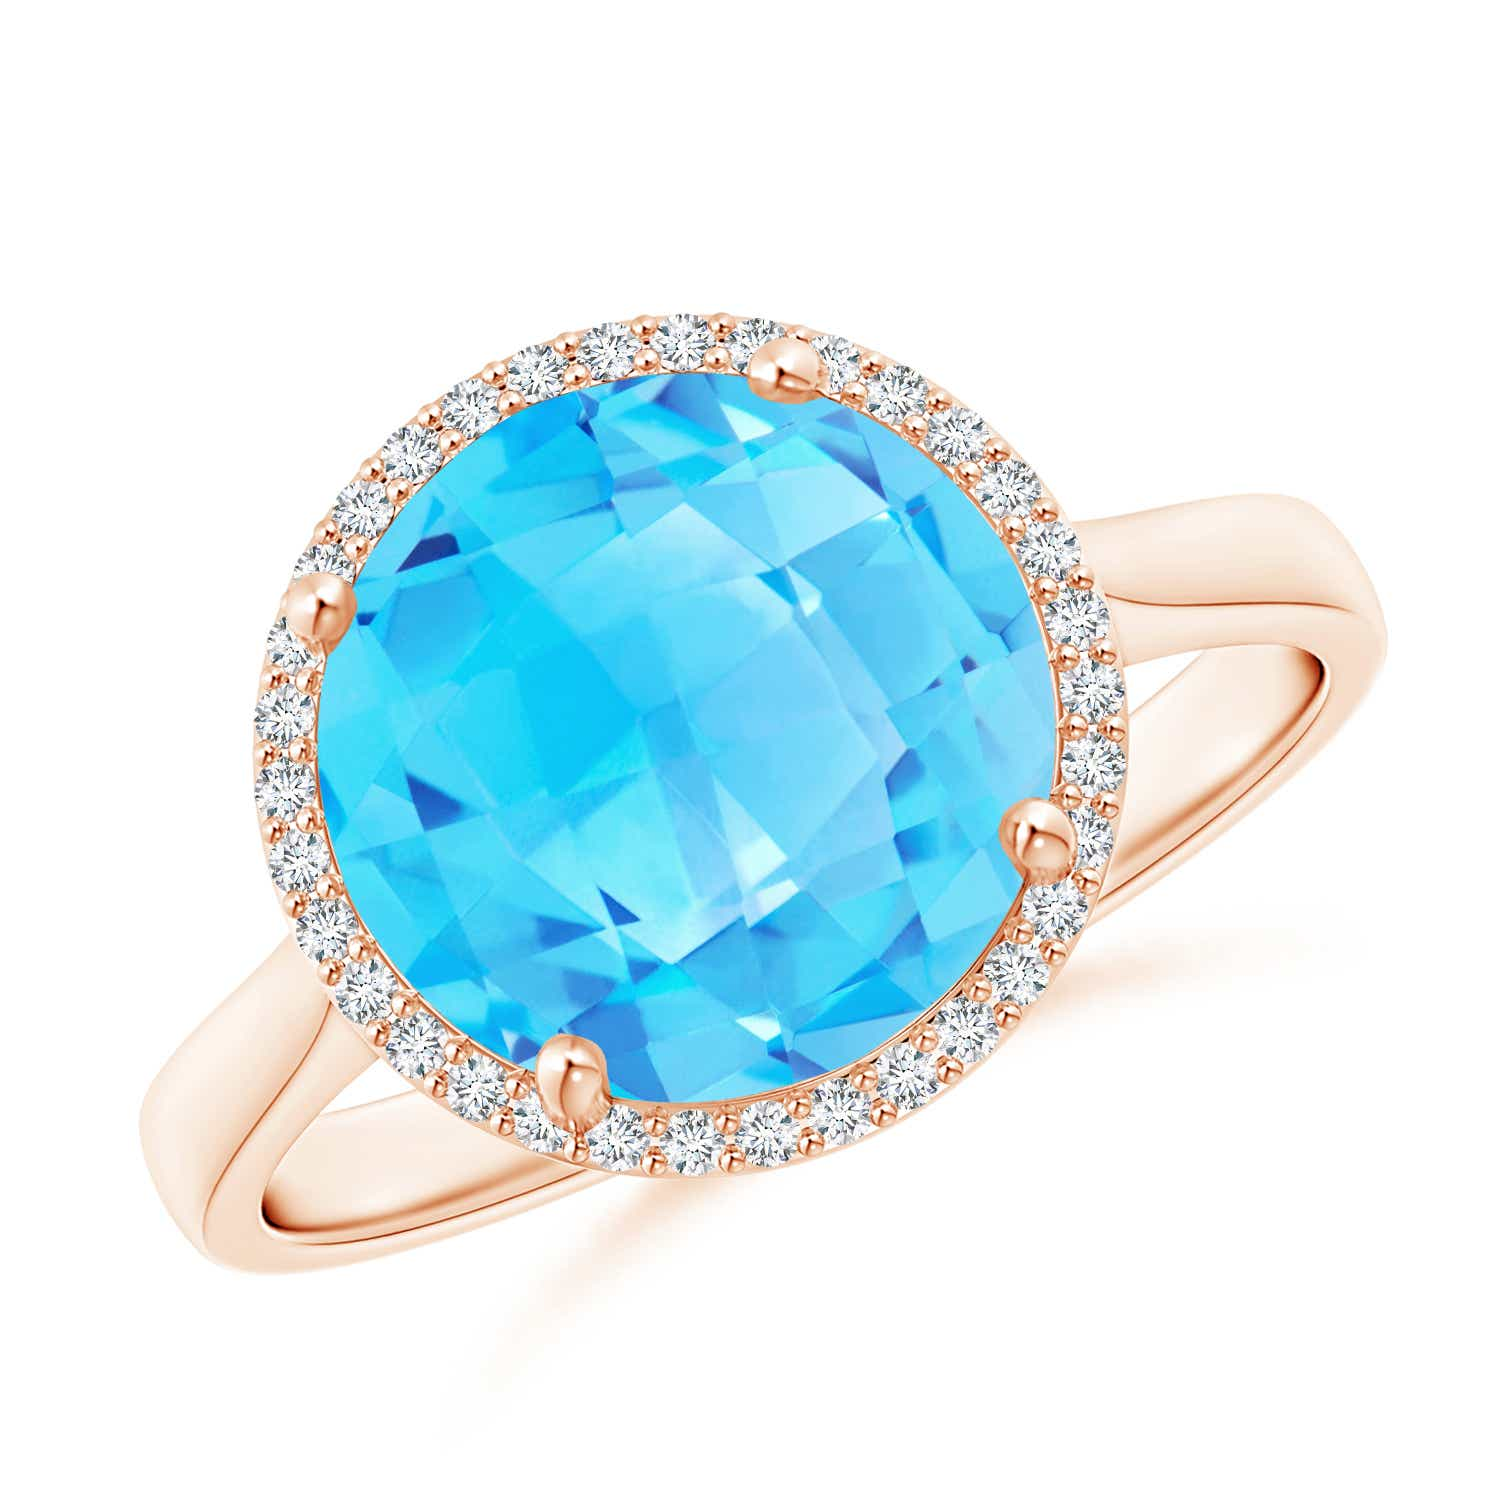 Angara Pear-Shaped Swiss Blue Topaz Cocktail Ring with Diamond Halo